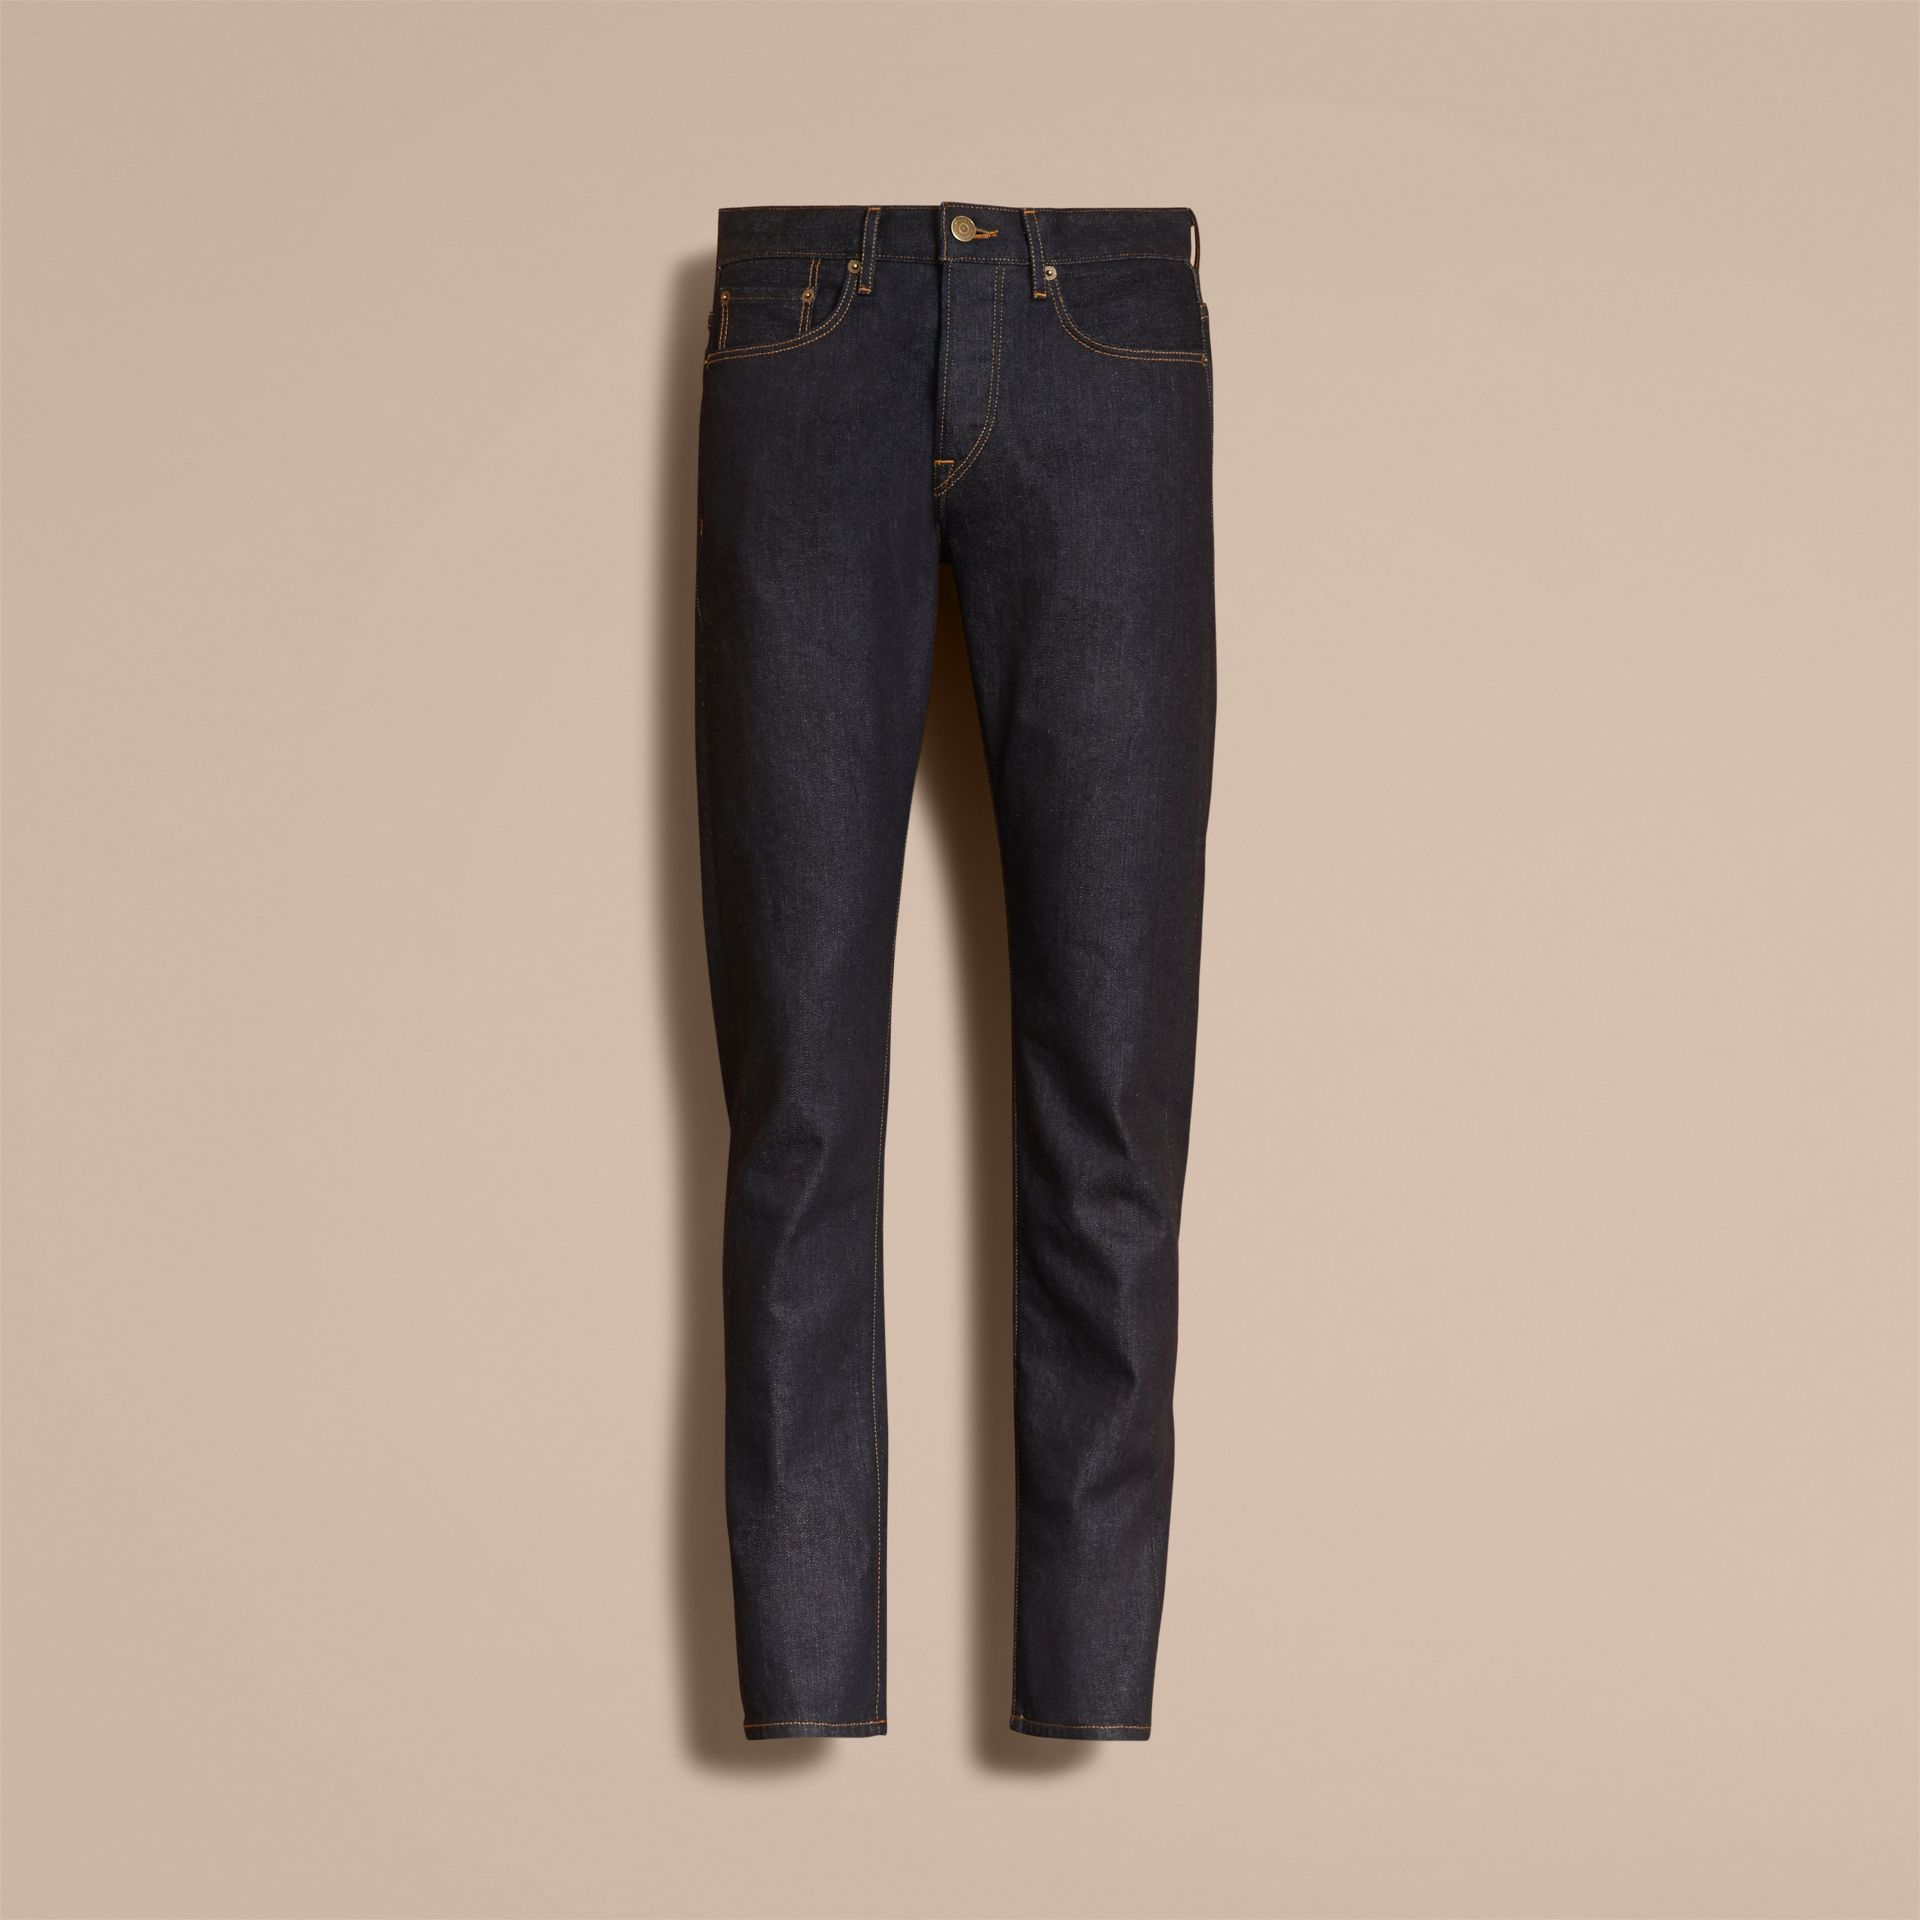 Relaxed Fit Comfort Stretch Indigo Japanese Denim Jeans - Men | Burberry - gallery image 4